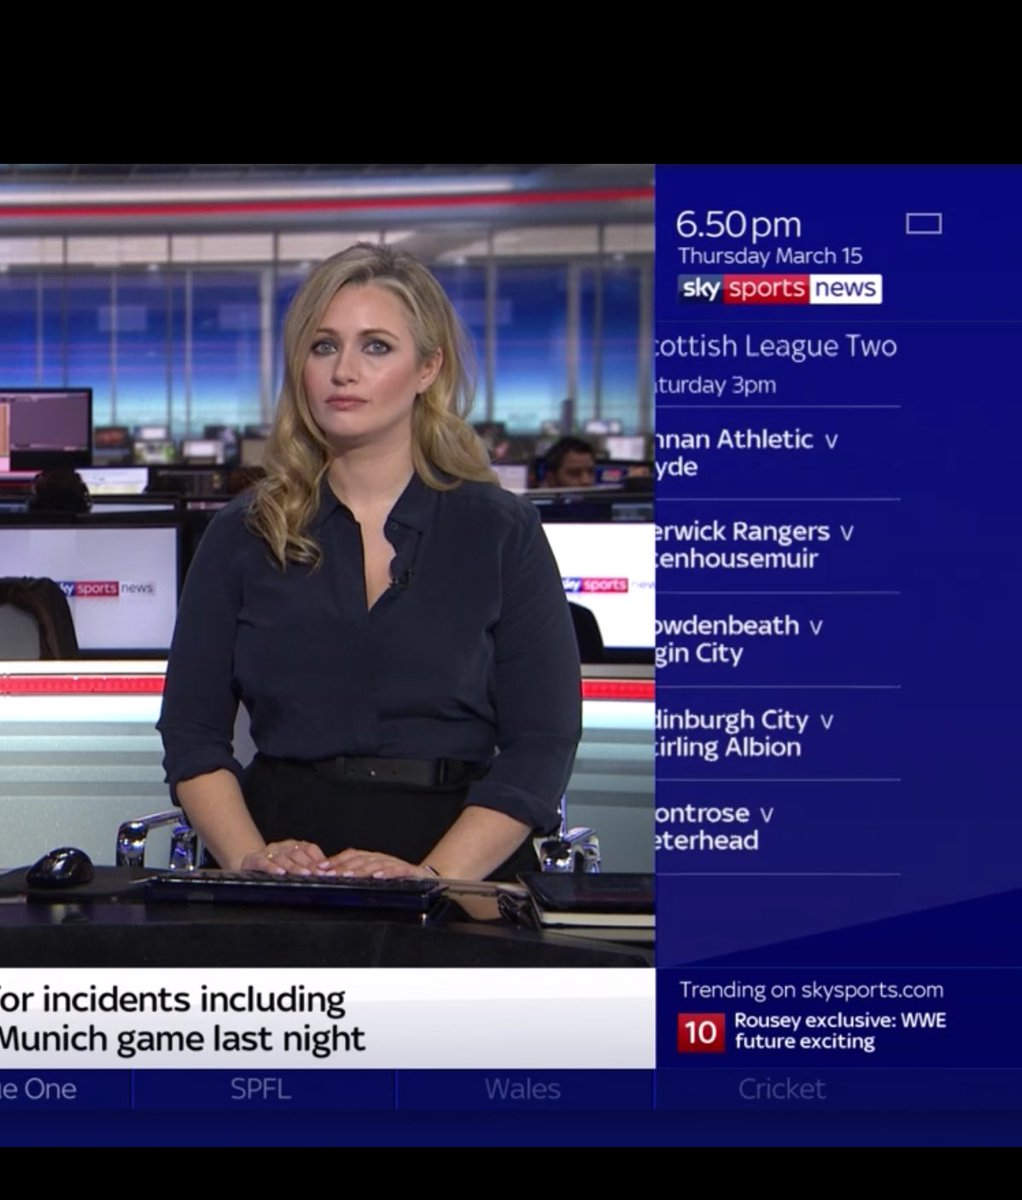 Paparazzi Hayley McQueen nude (32 foto and video), Pussy, Cleavage, Boobs, butt 2018